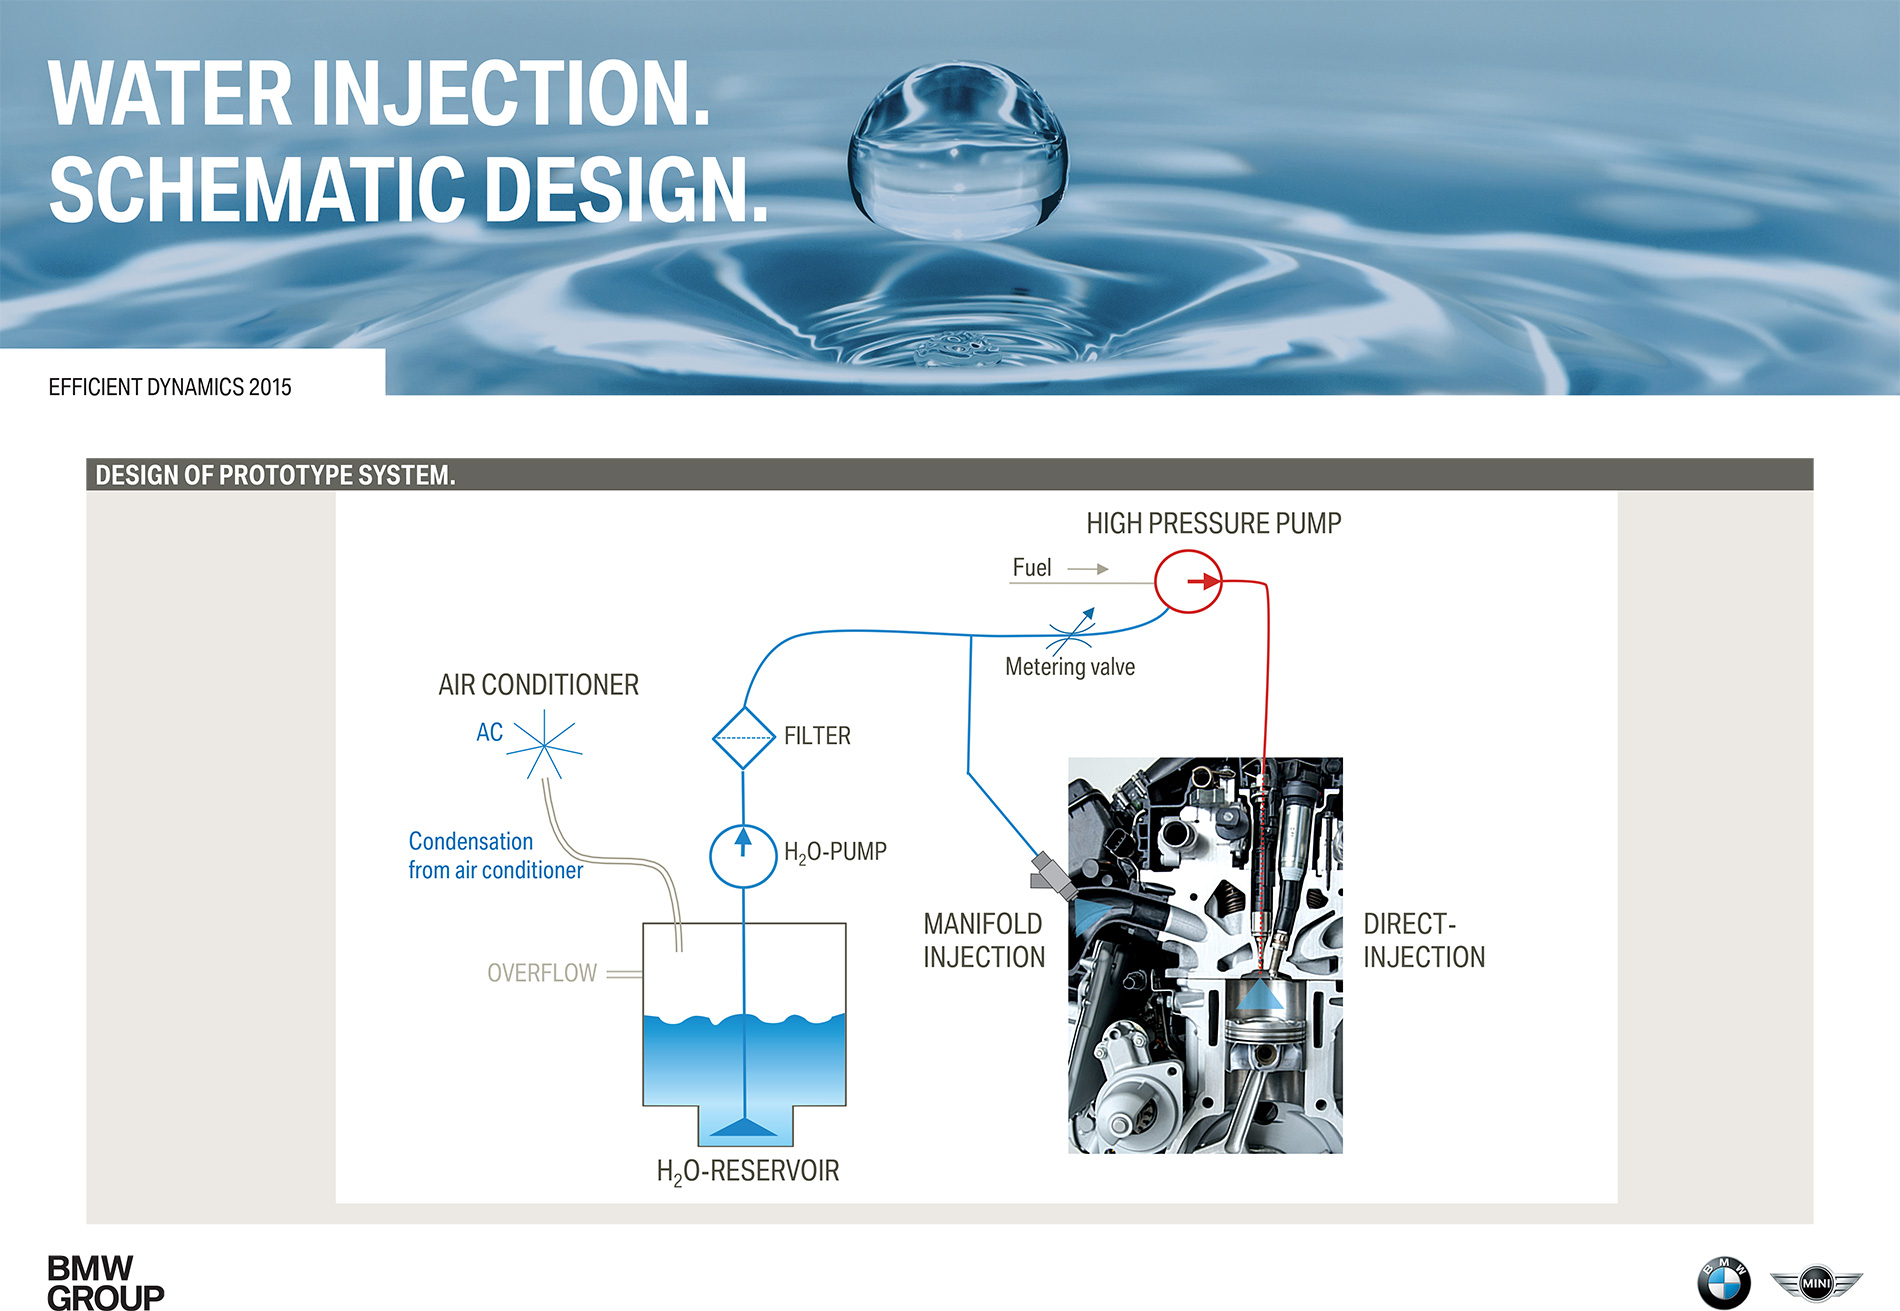 BMW 1 Series with Direct Water Injection - First Drive Direct Injected Engine Diagram on engine block, engine system, engine valves, engine cylinder, engine layout, engine compartment, engine lifters, engine bearings, engine animation, engine head, engine components, engine displacement, engine motor runs, engine cutaway, engine breakdown, engine parts, engine intake, engine anatomy, engine blueprint, engine drawing,